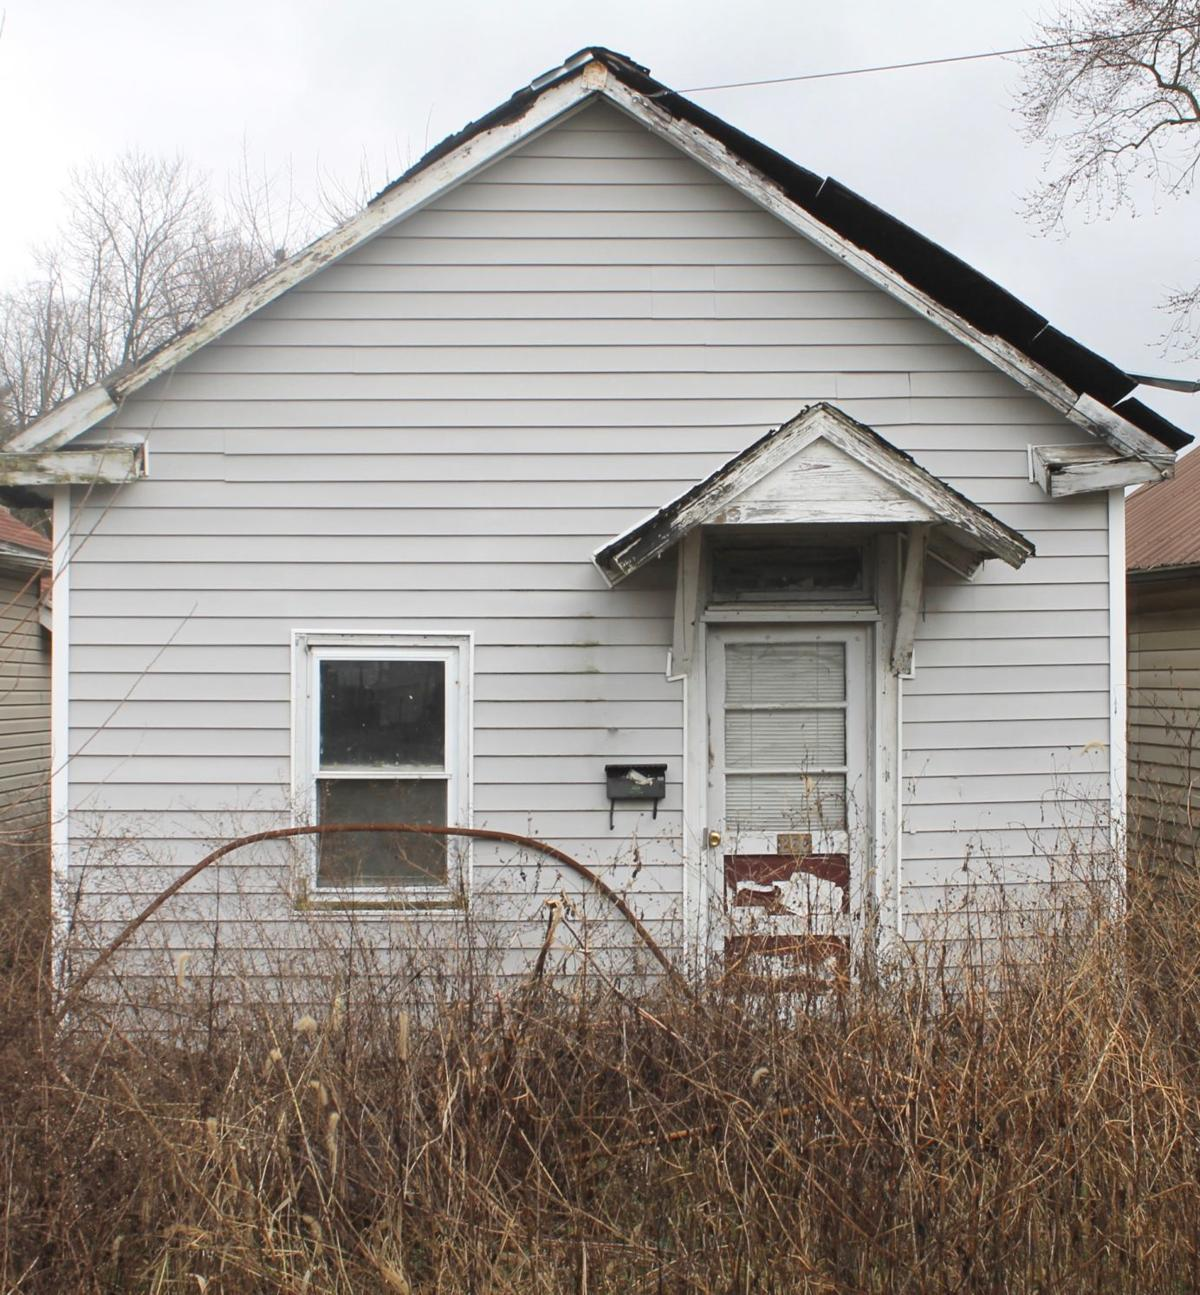 Vacant home